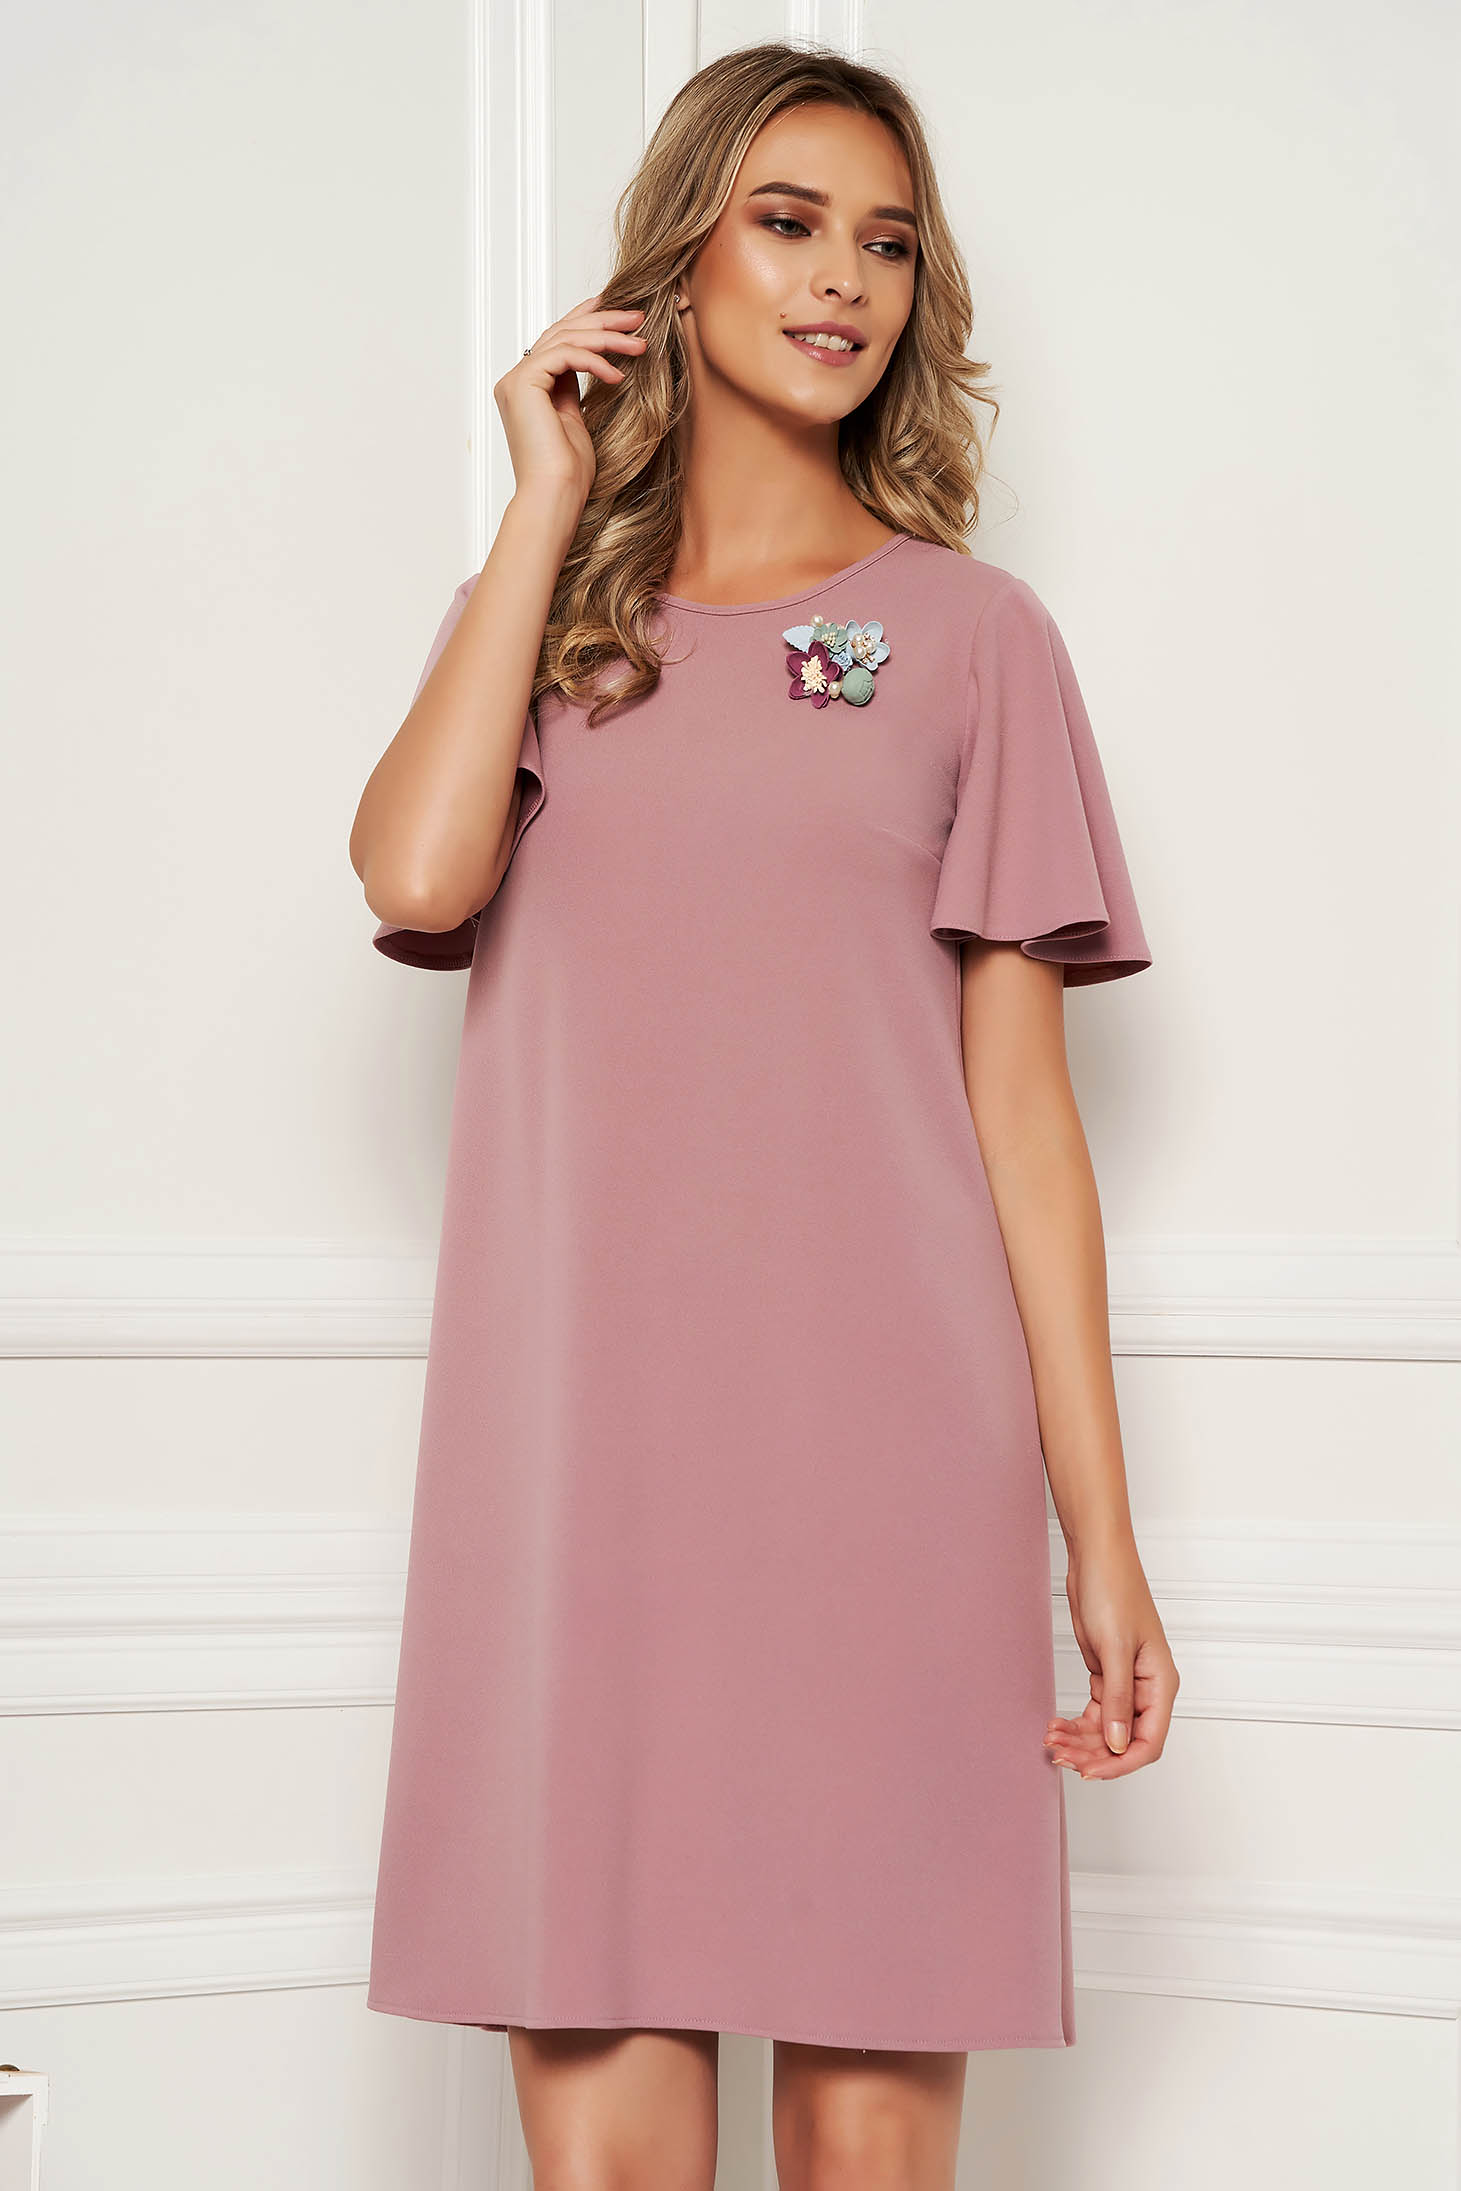 StarShinerS lila dress elegant daily straight with butterfly sleeves accessorized with breastpin